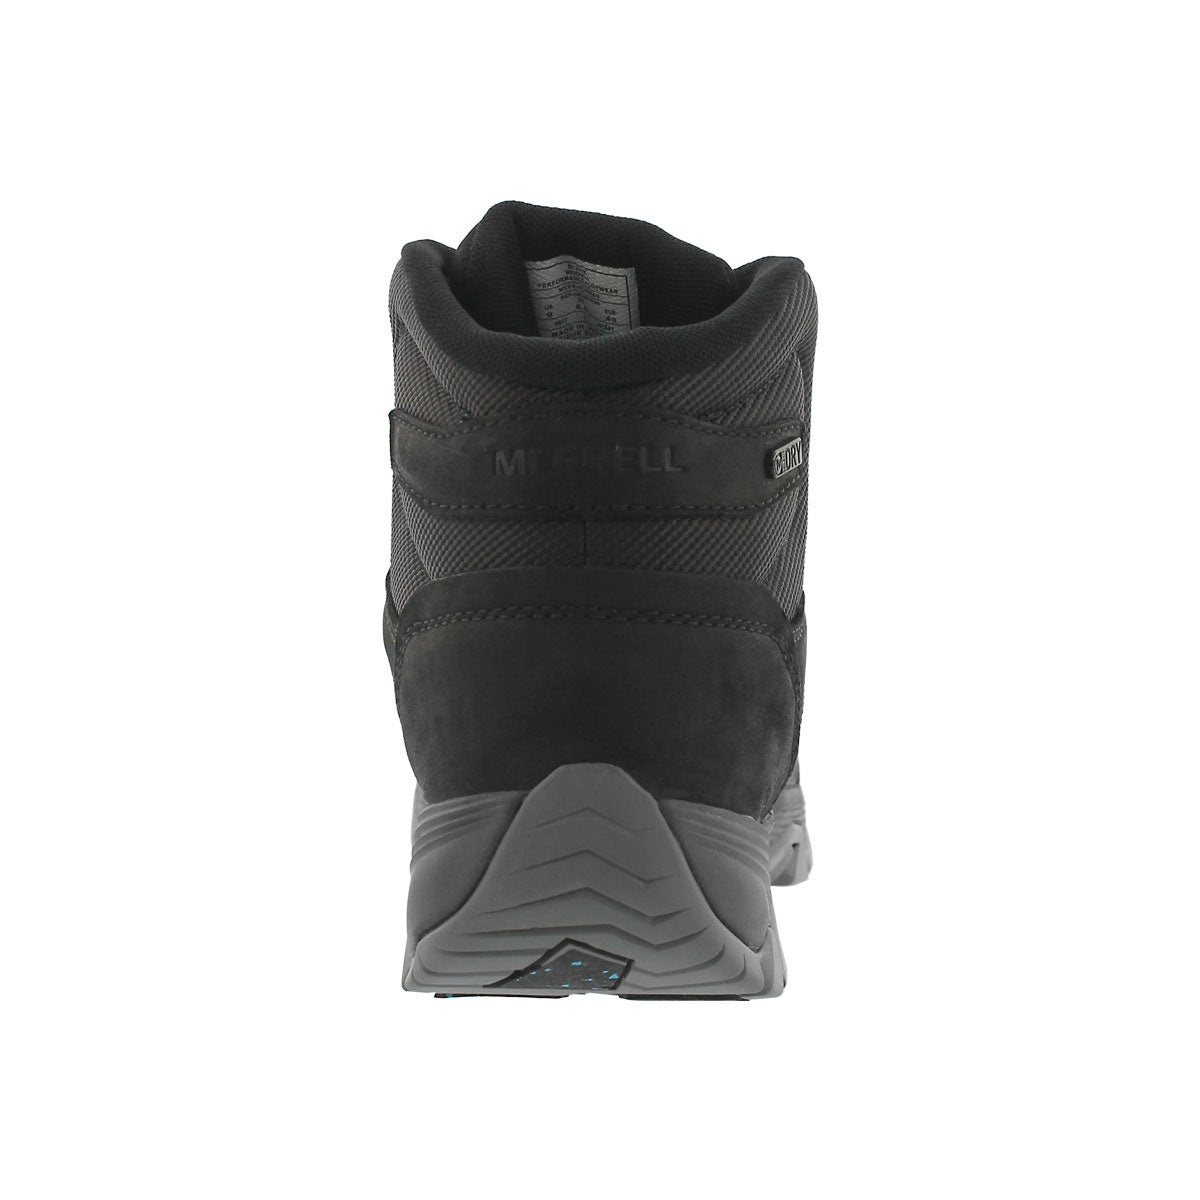 Mns Coldpack Ice black wtpf winter boot